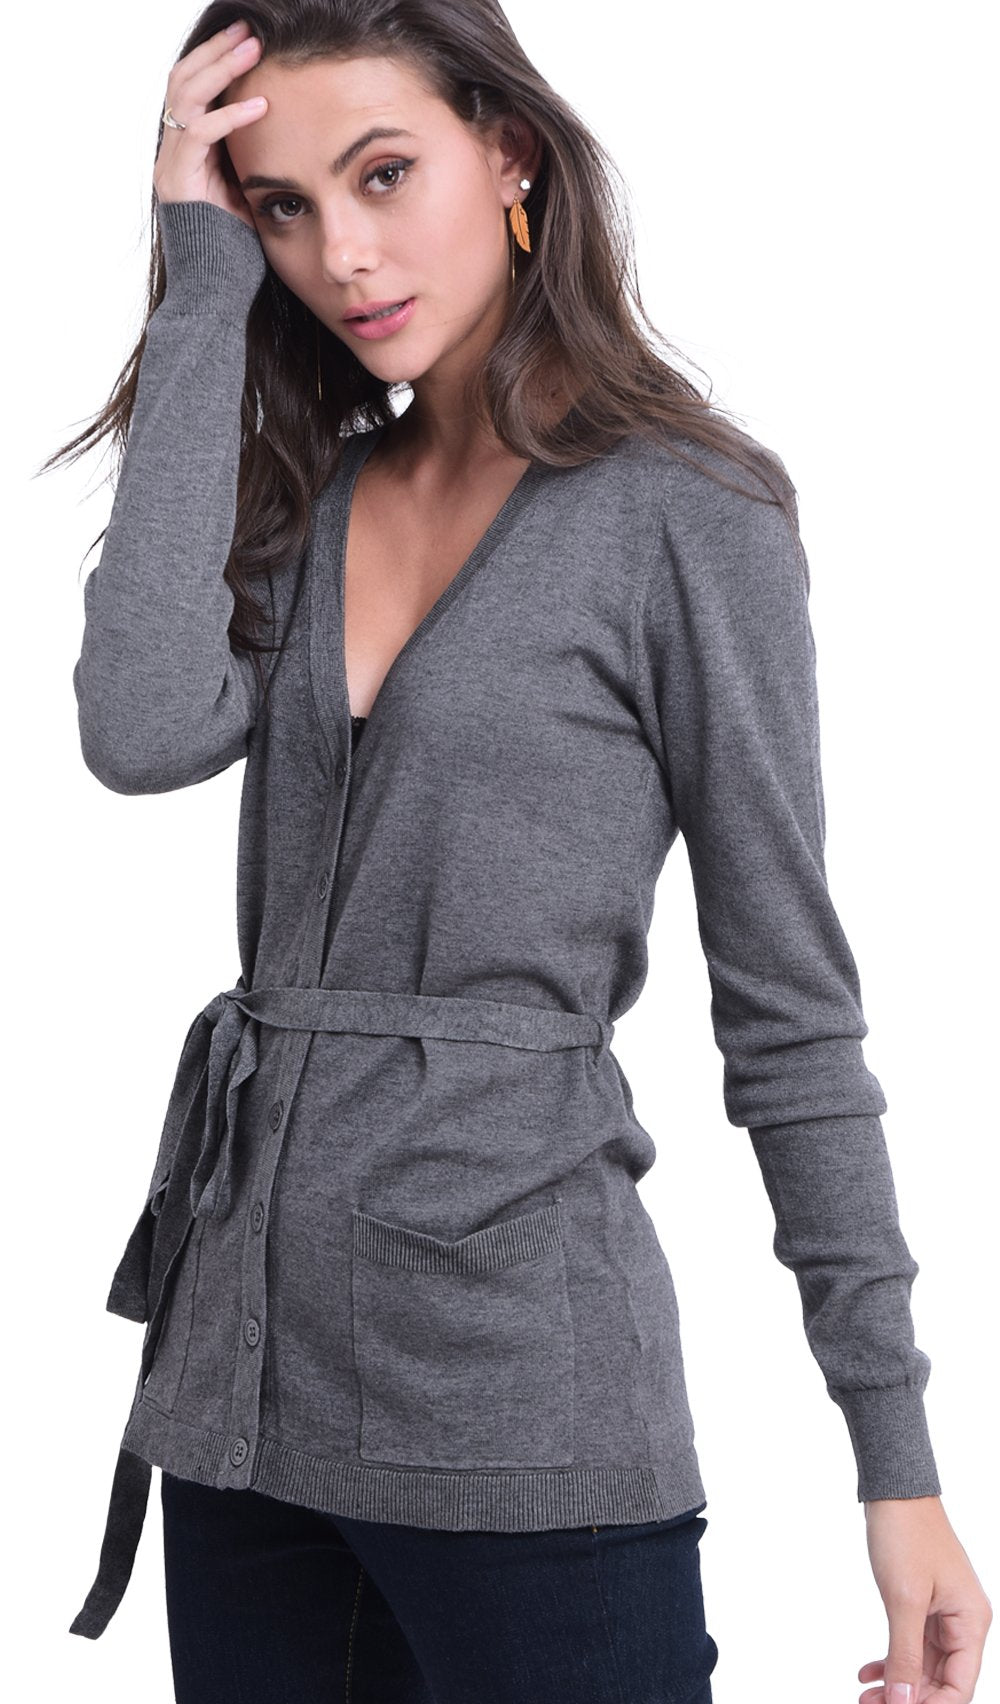 MI-LONG BUTTONED CARDIGAN WITH BELT AND POCKETS